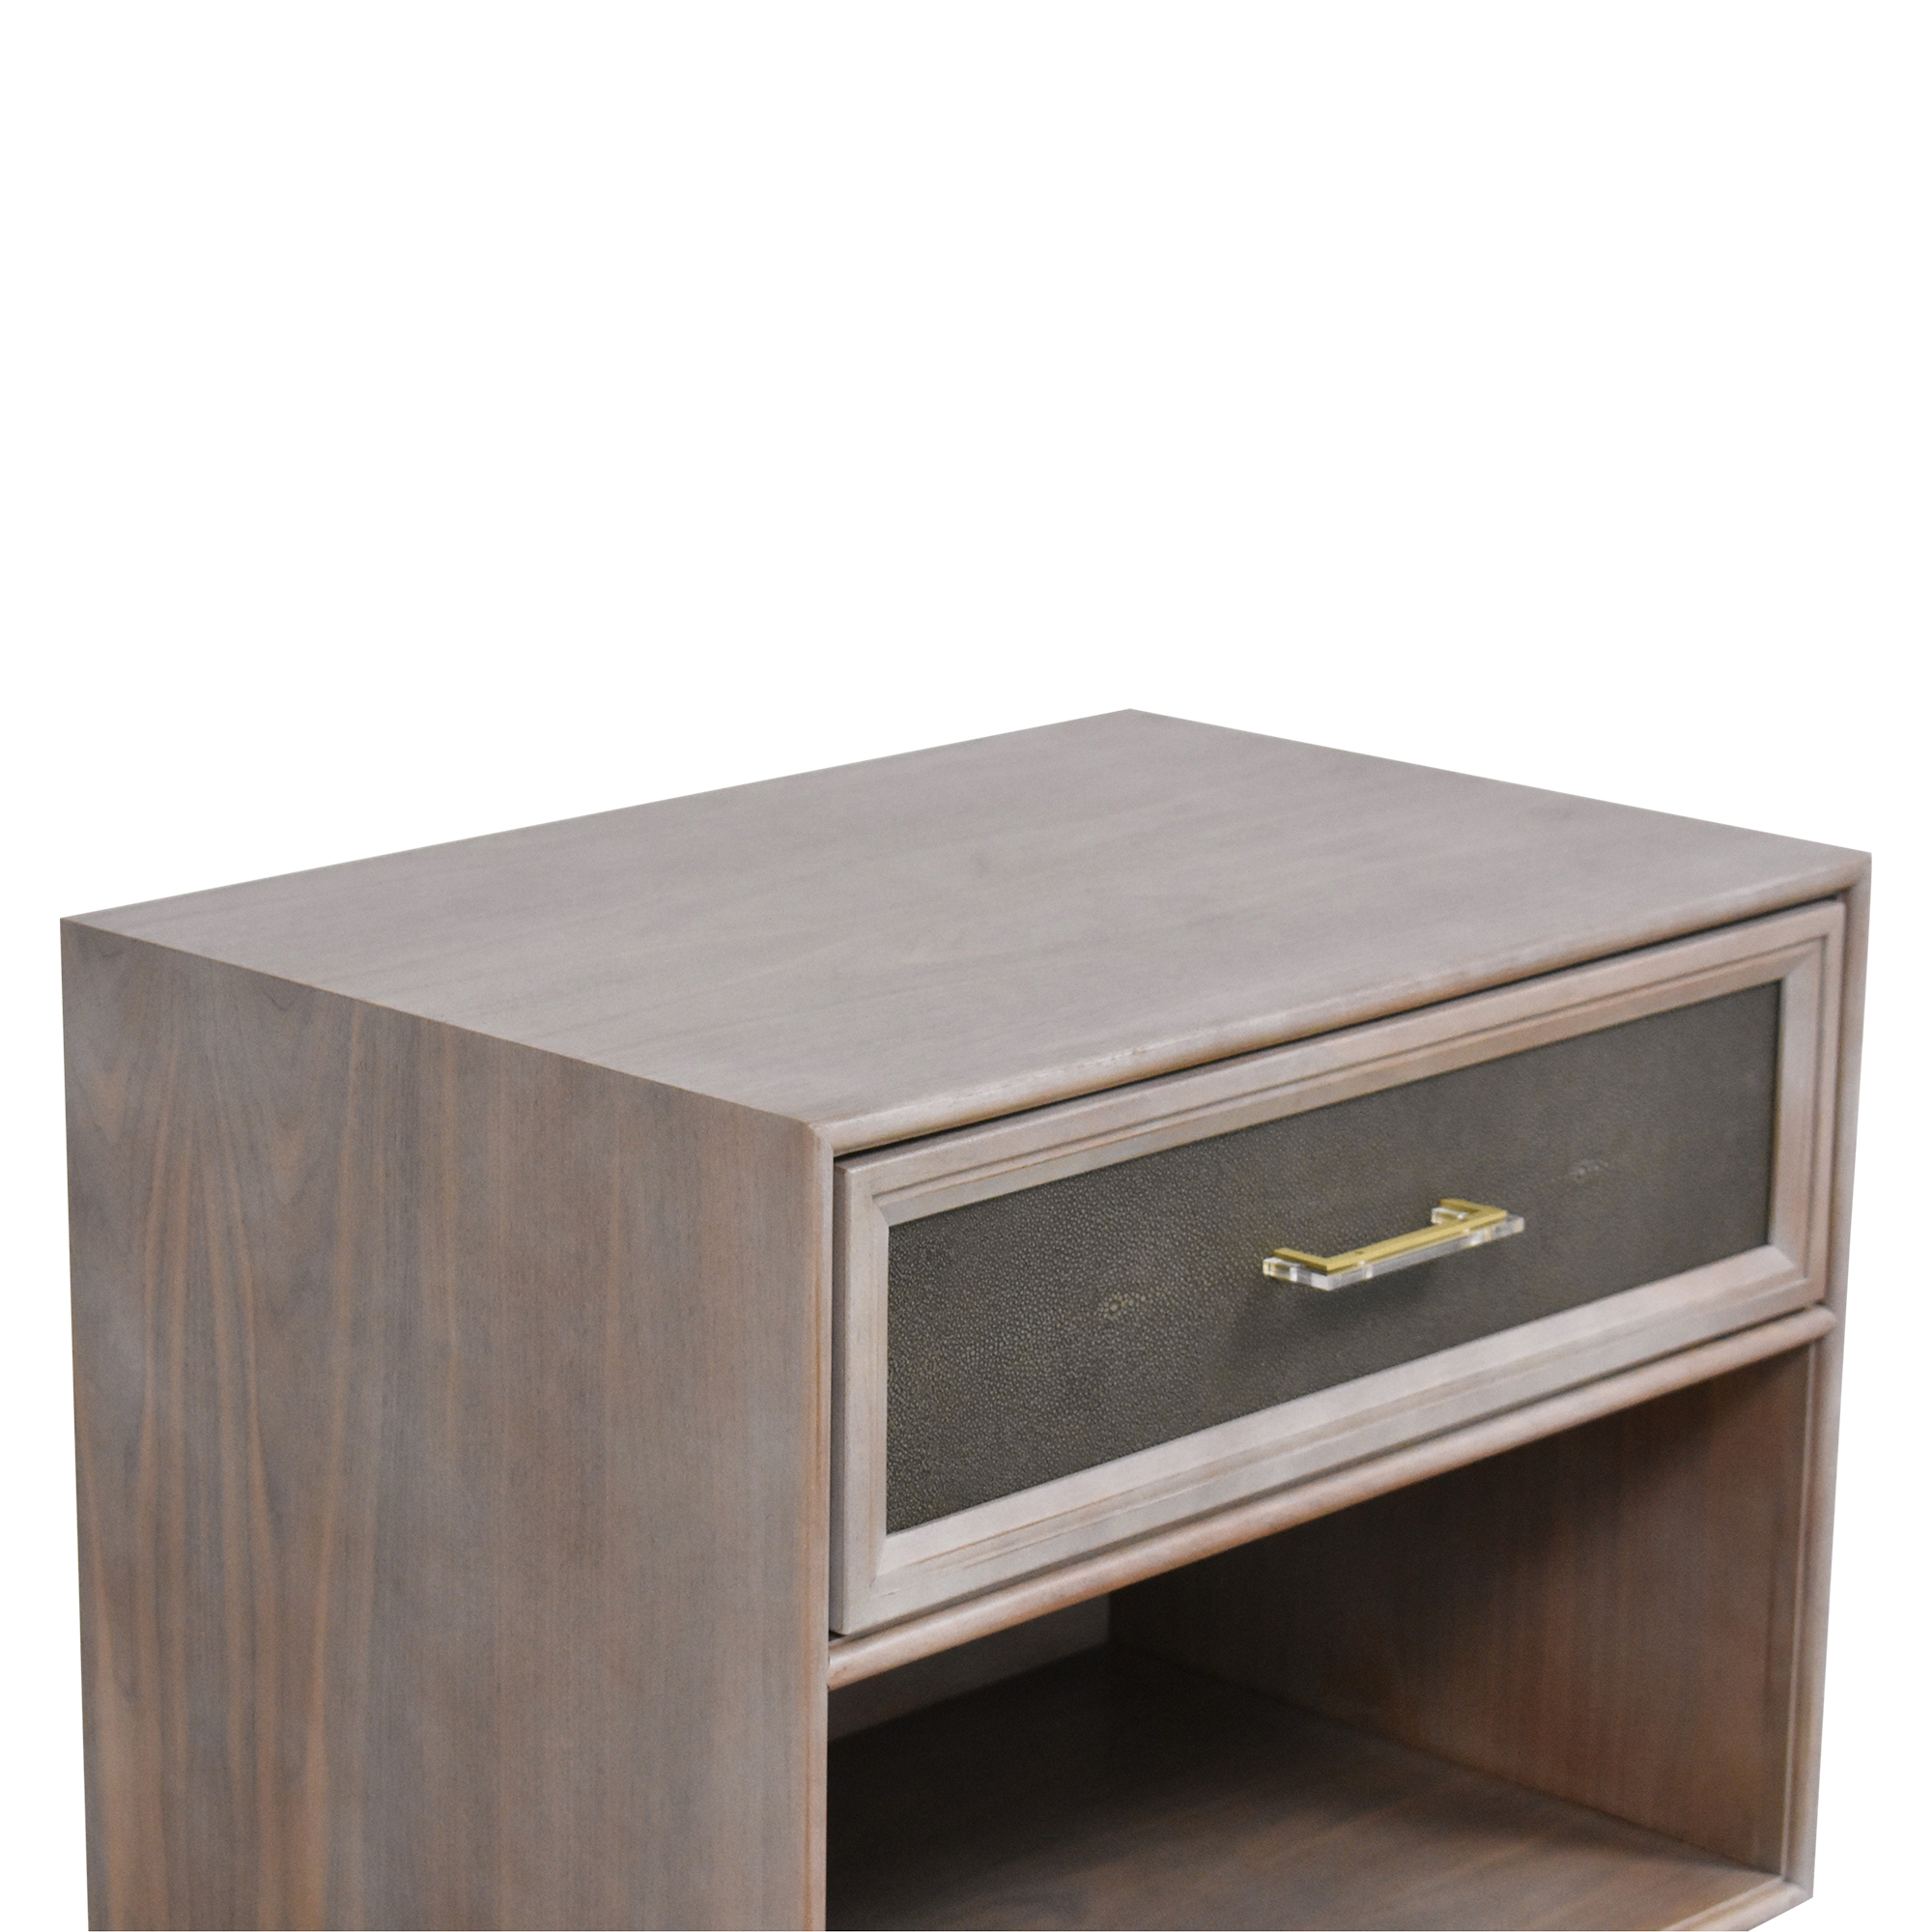 The New Traditionalists Single Drawer End Table / Tables